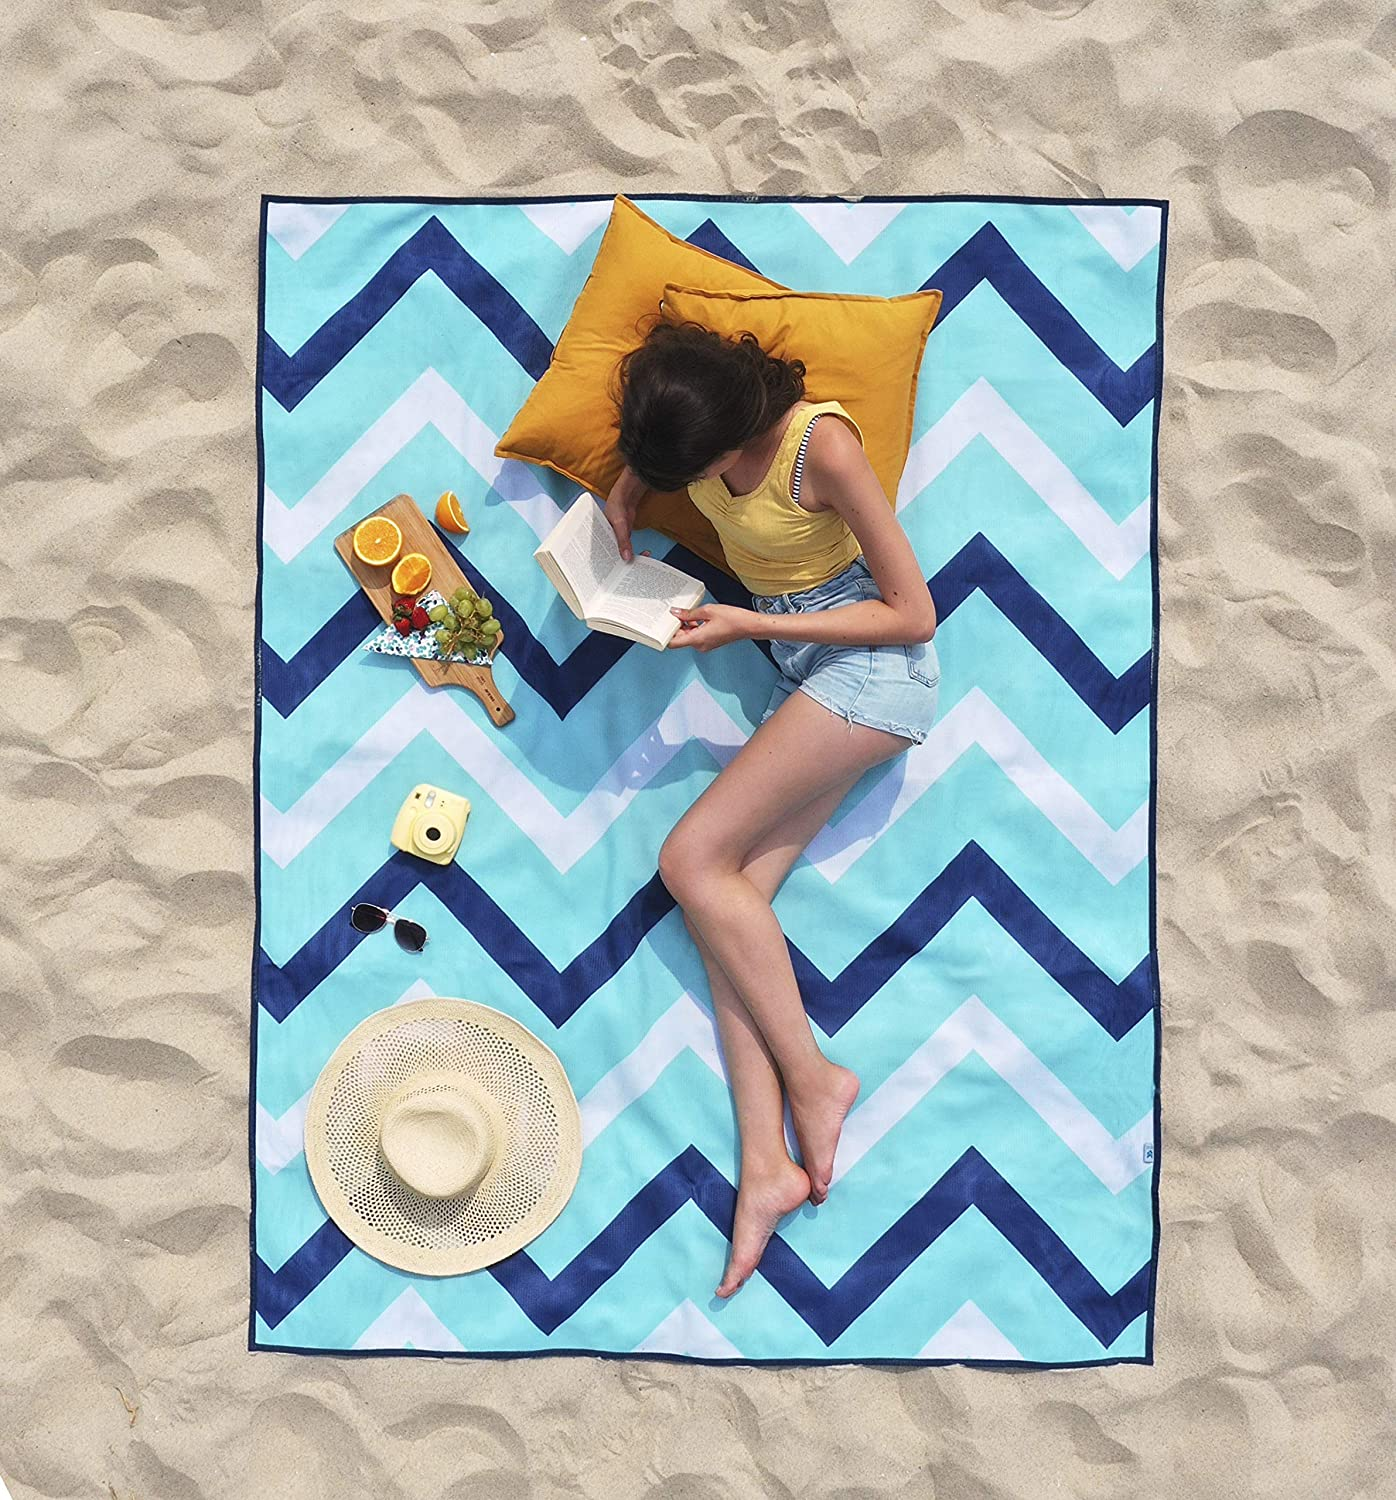 CGear Sandlite camping Patented Sand-Free Beach Mat thats durable and all outdoor adventures. water-resistant and great for family picnics